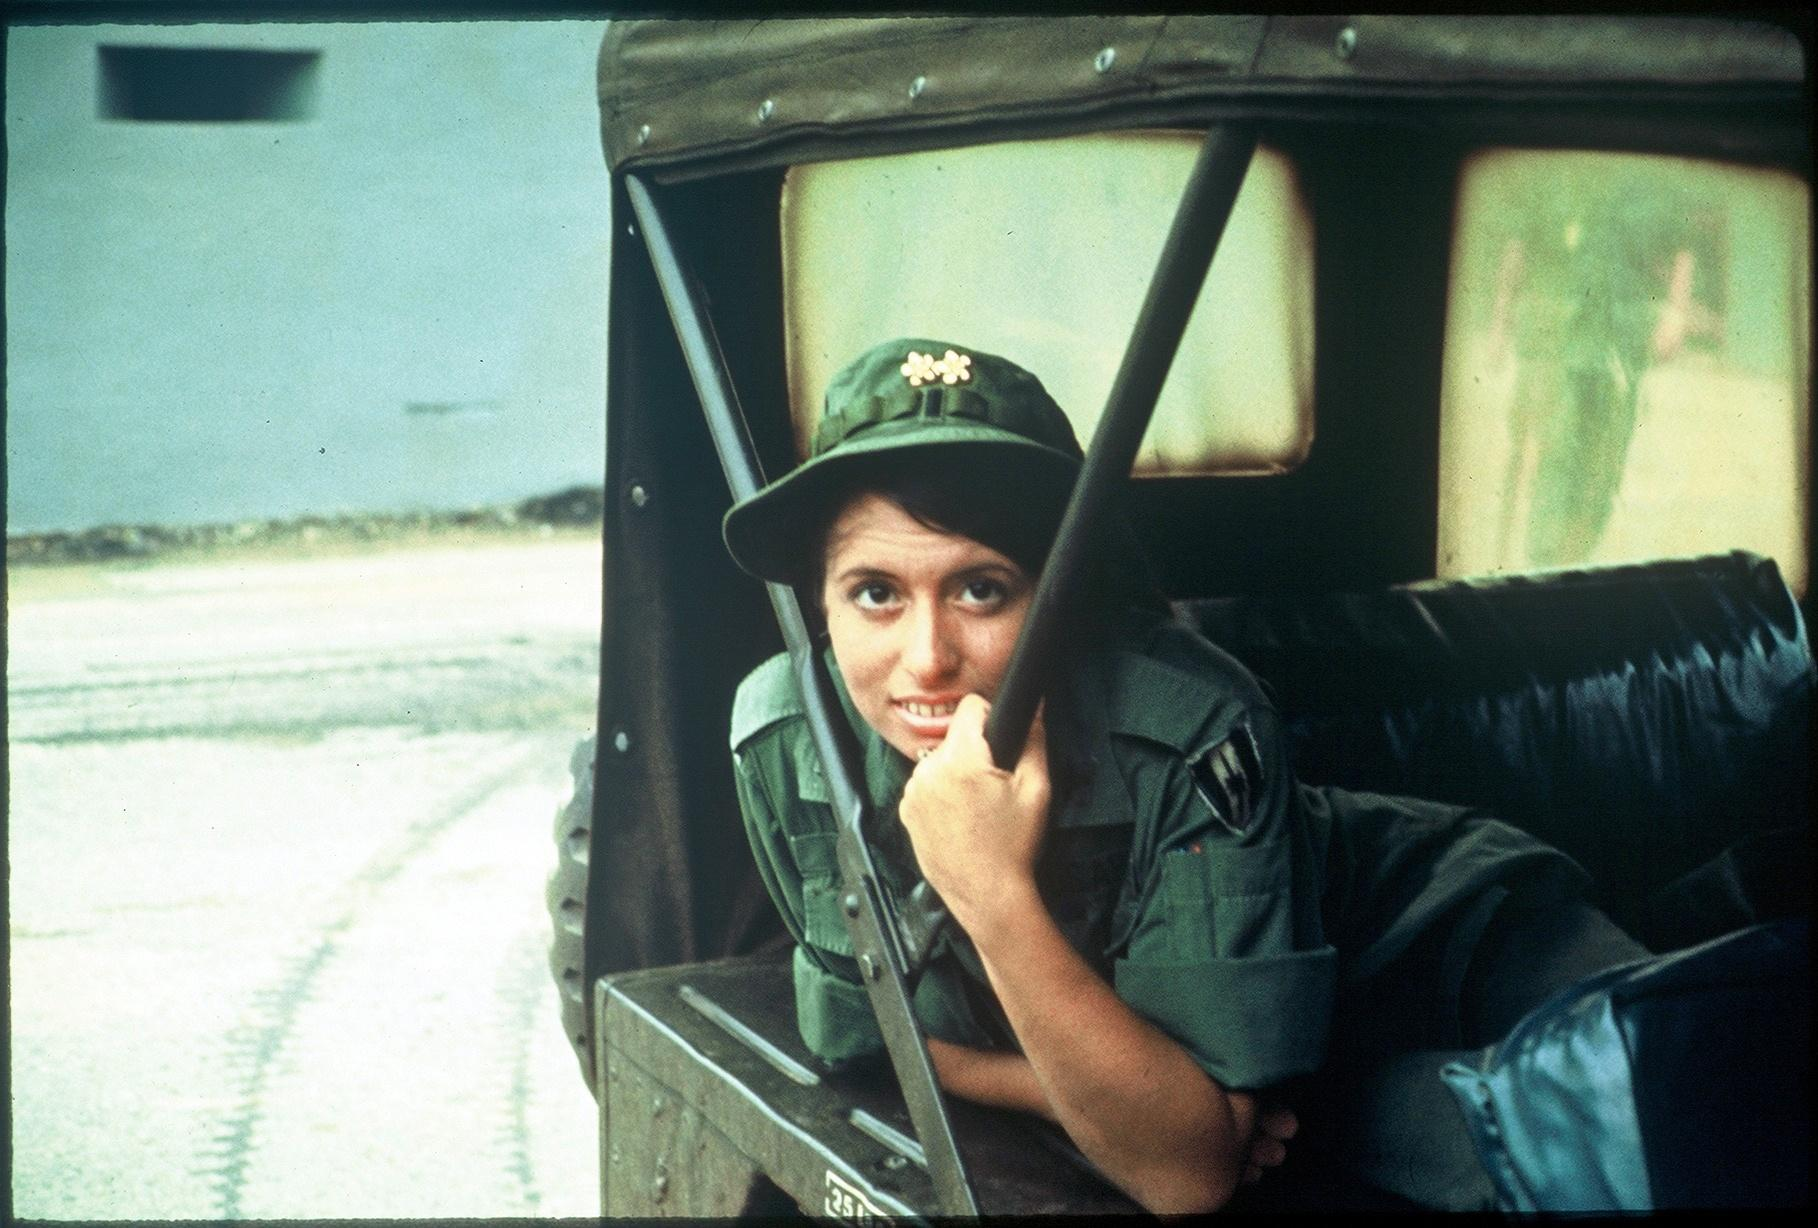 Image of Lou Eisenbrandt in a jeep